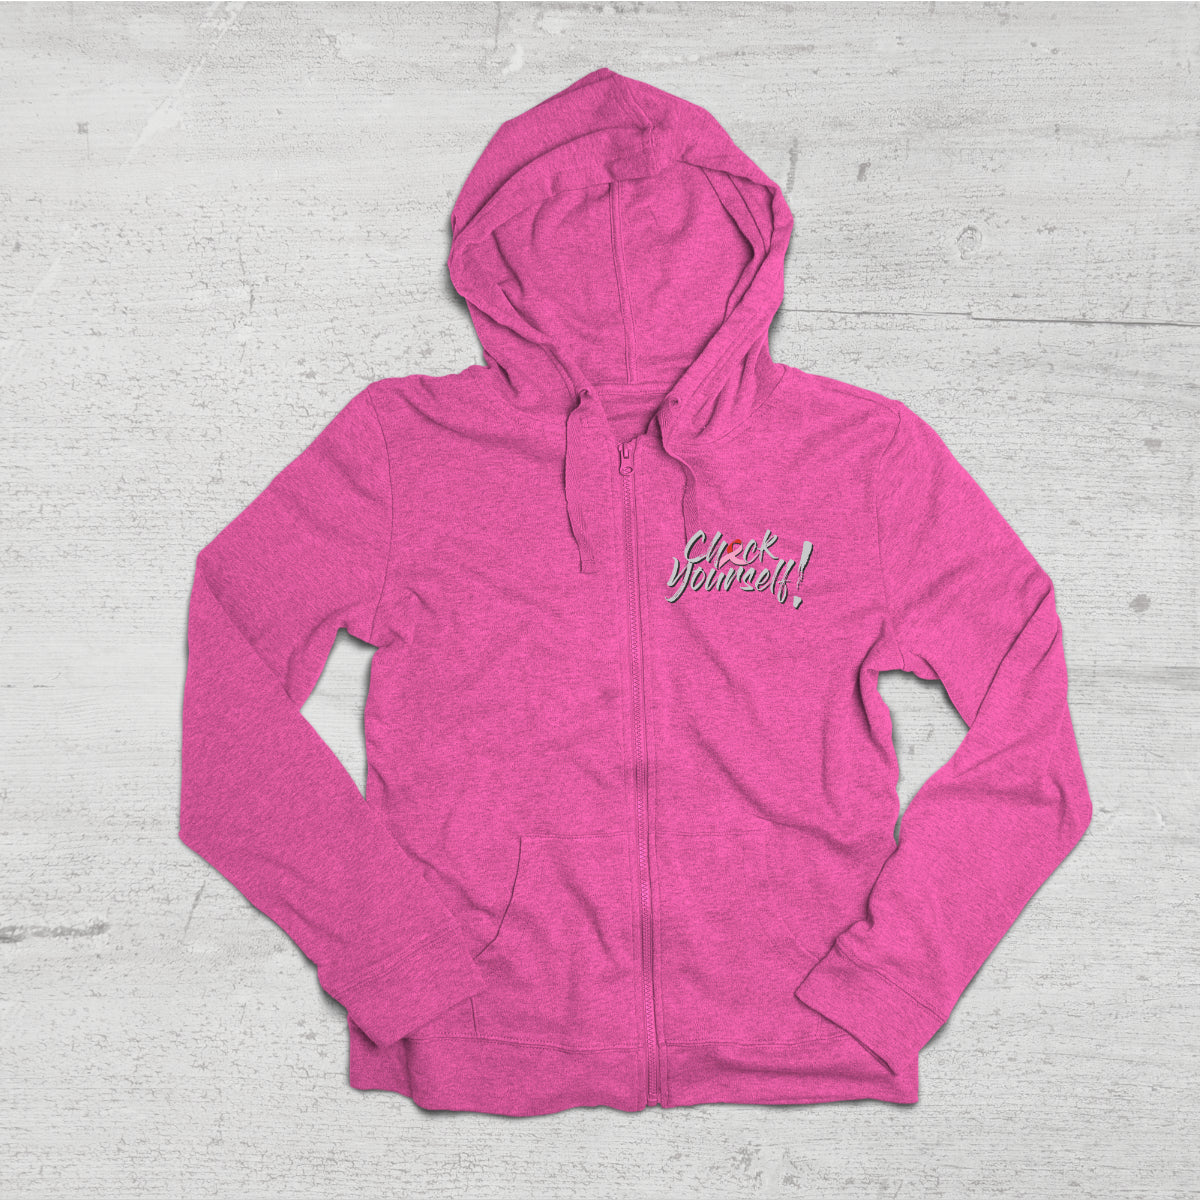 Check Yourself - Breast Cancer Awareness Hoodie Sweatshirt